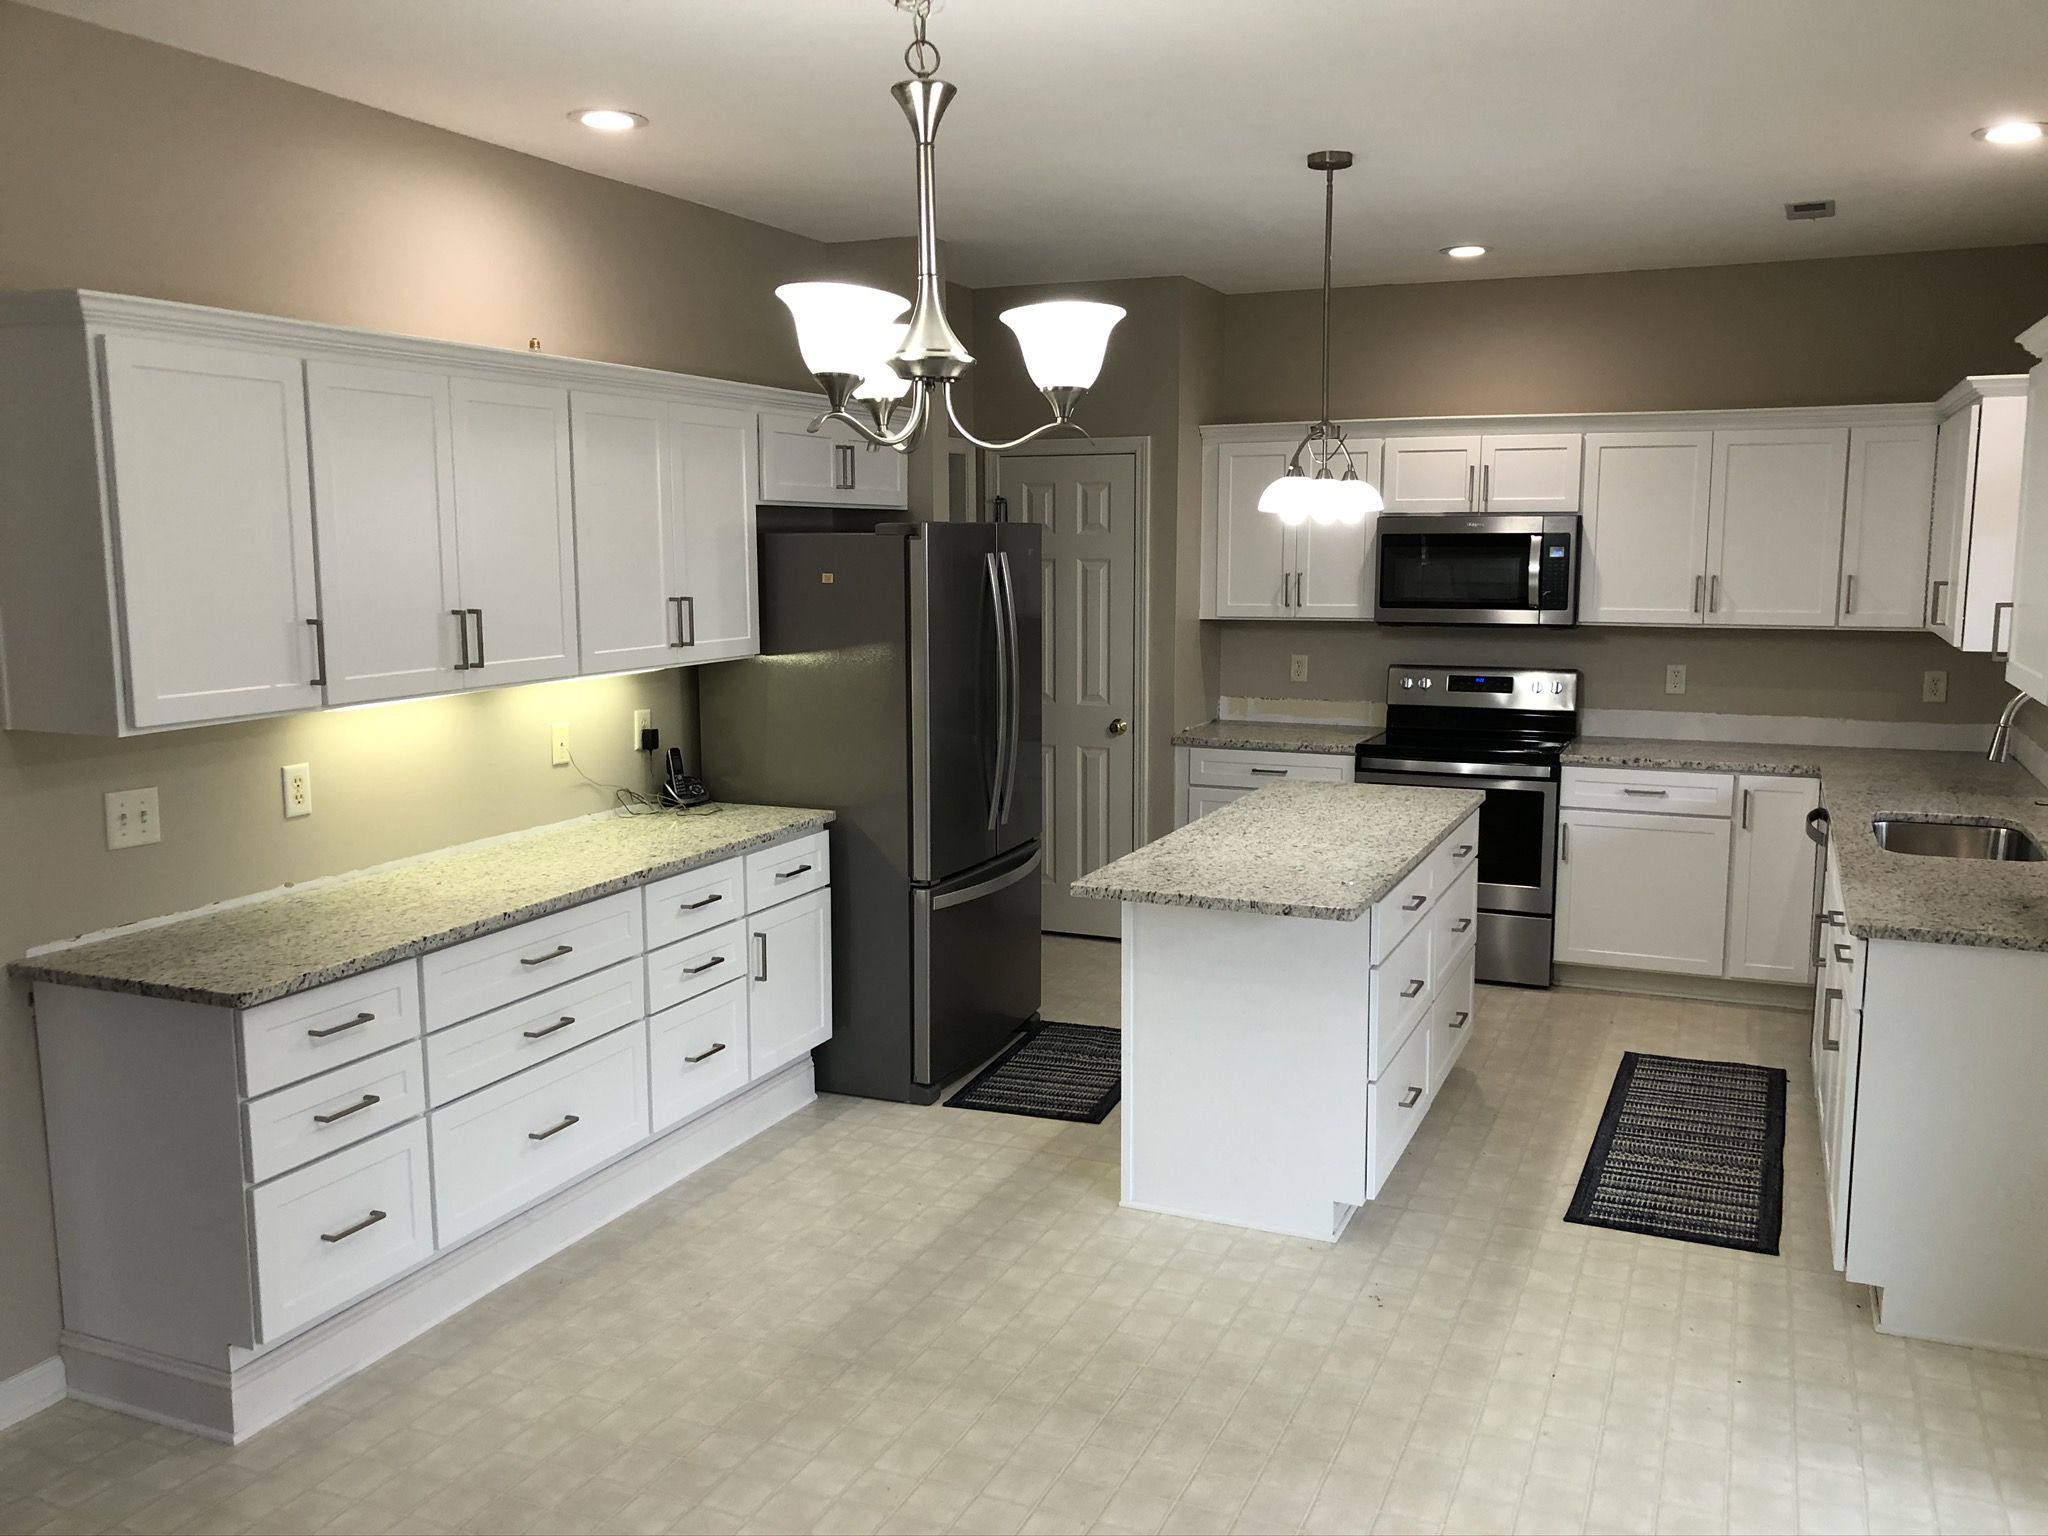 Kitchen Tune-Up Knoxville, TN - Refacing in 2020 | Cabinet ...